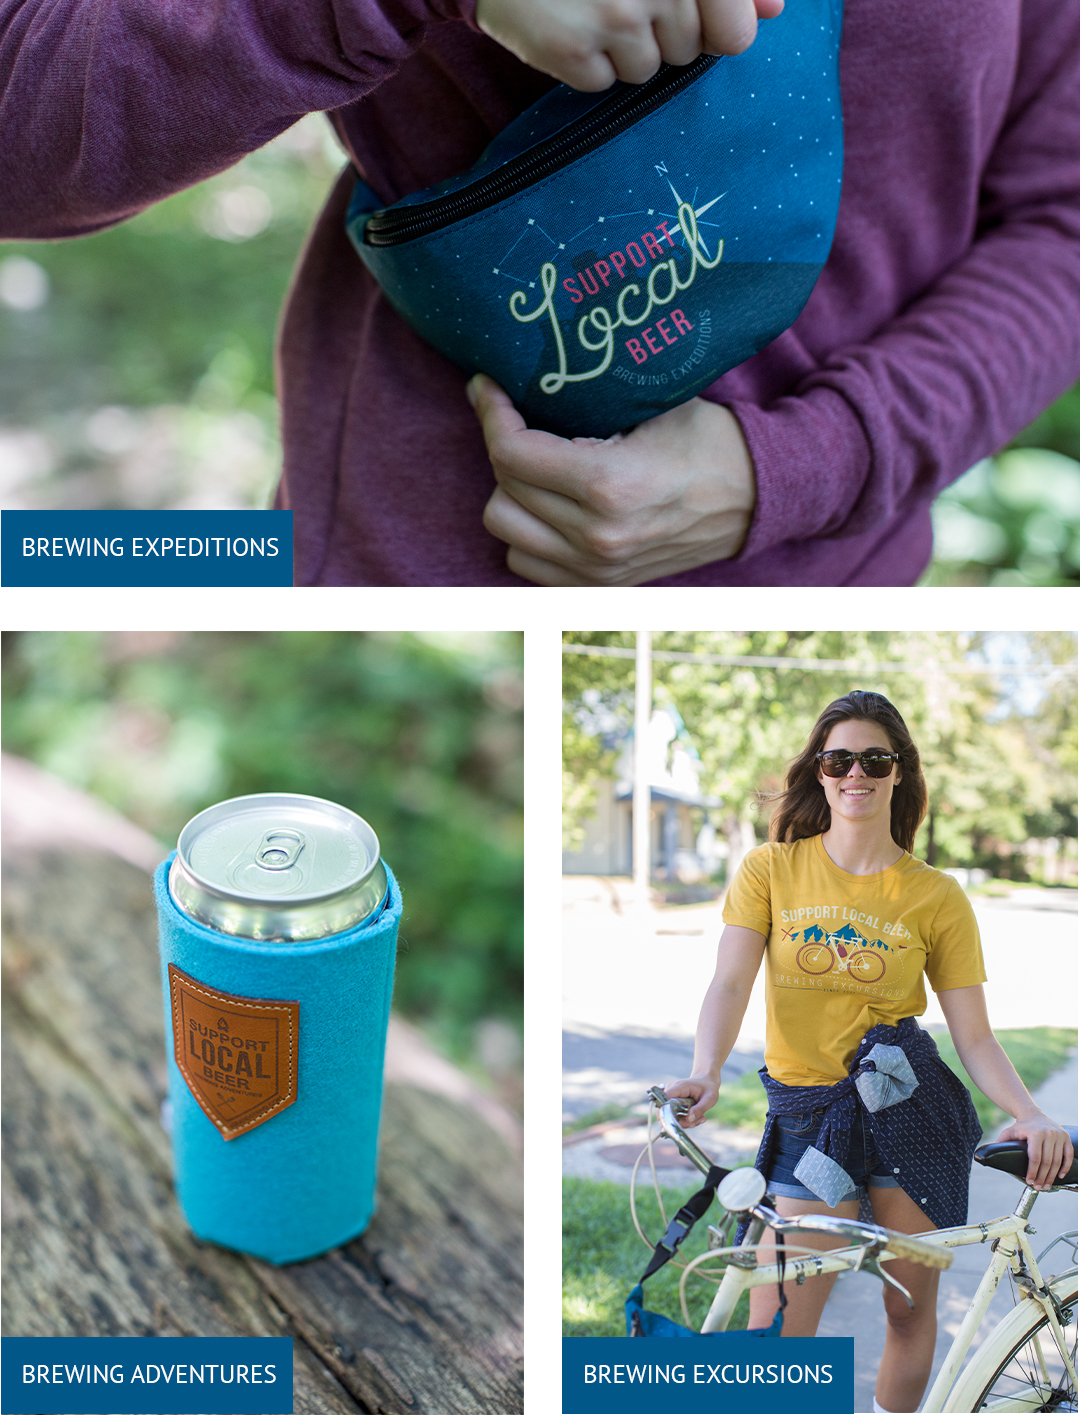 Collage of photos with branding on promotional items